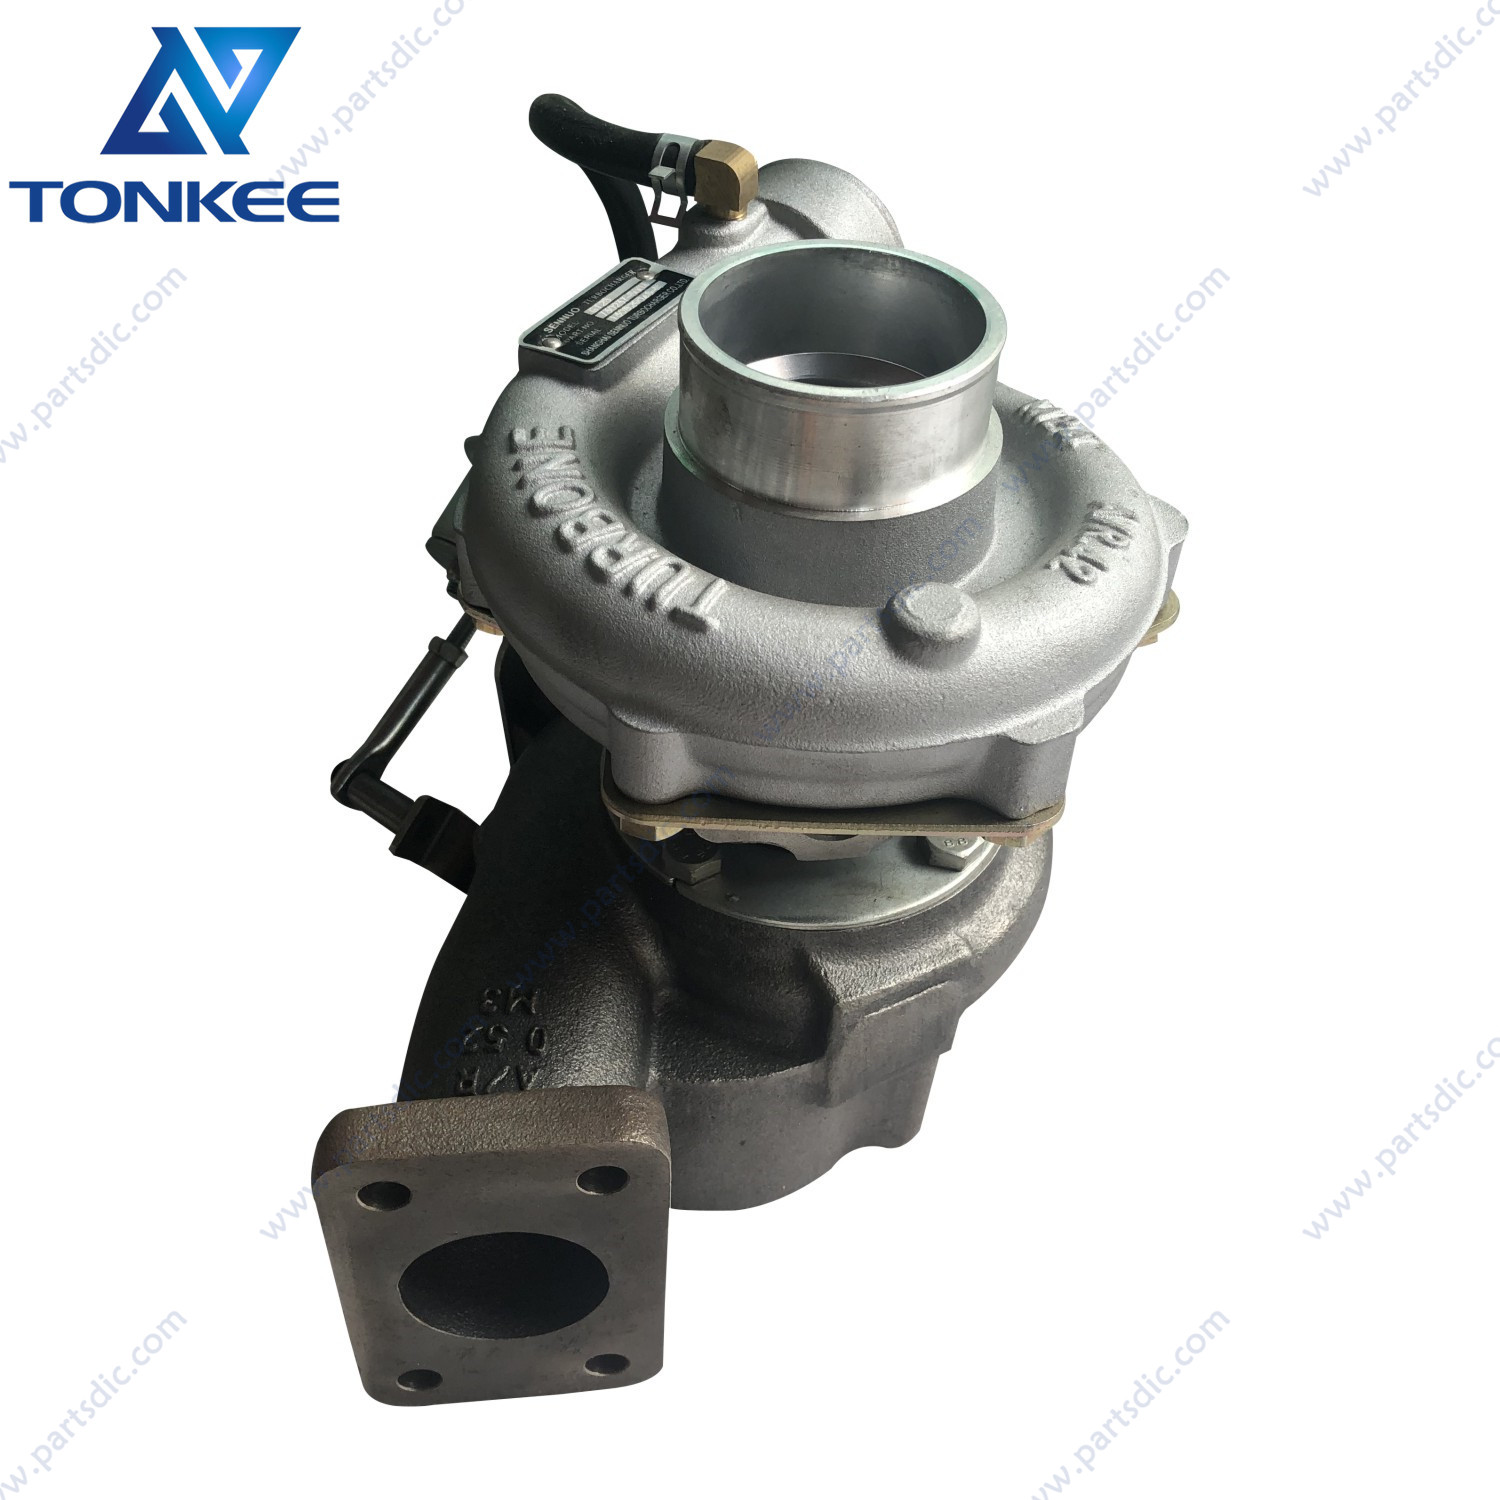 2674A845 GT25 GT2559 728918-5007 3054C 1104D-44T excavator engine turbo 422E 428E 432E Backhoe Loader diesel engine turbo